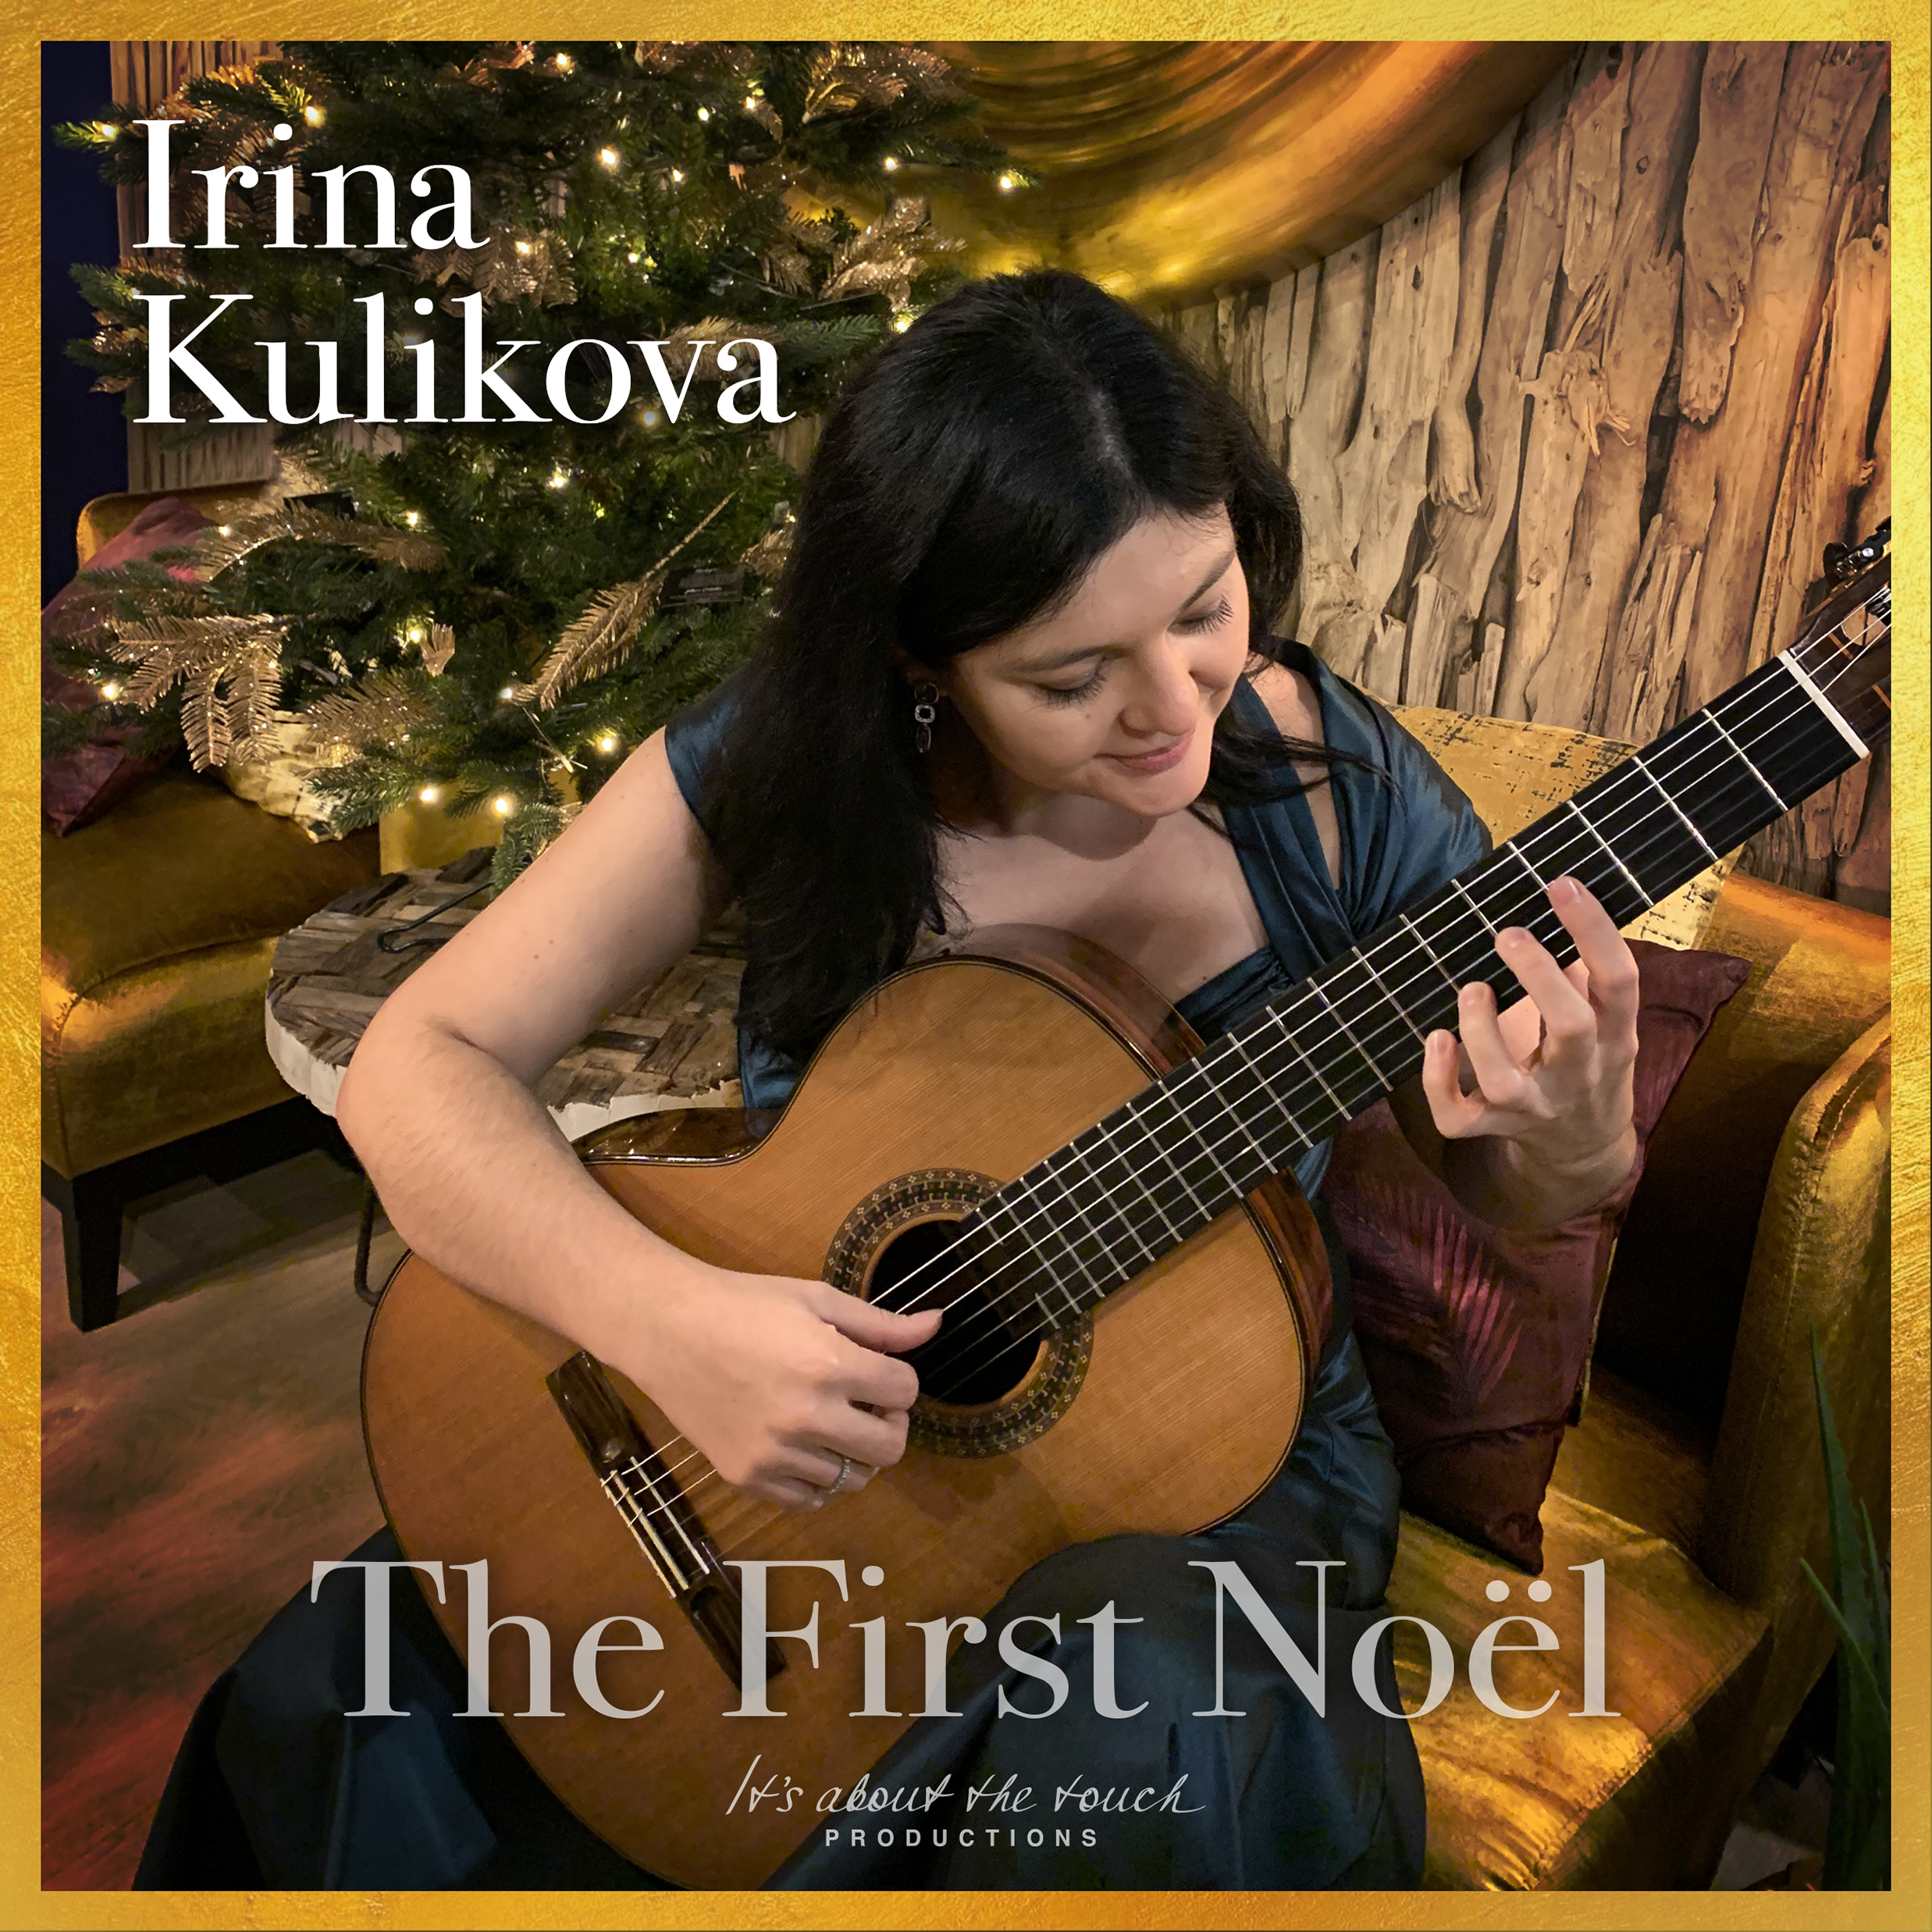 Irina Kulikova First Noël cover